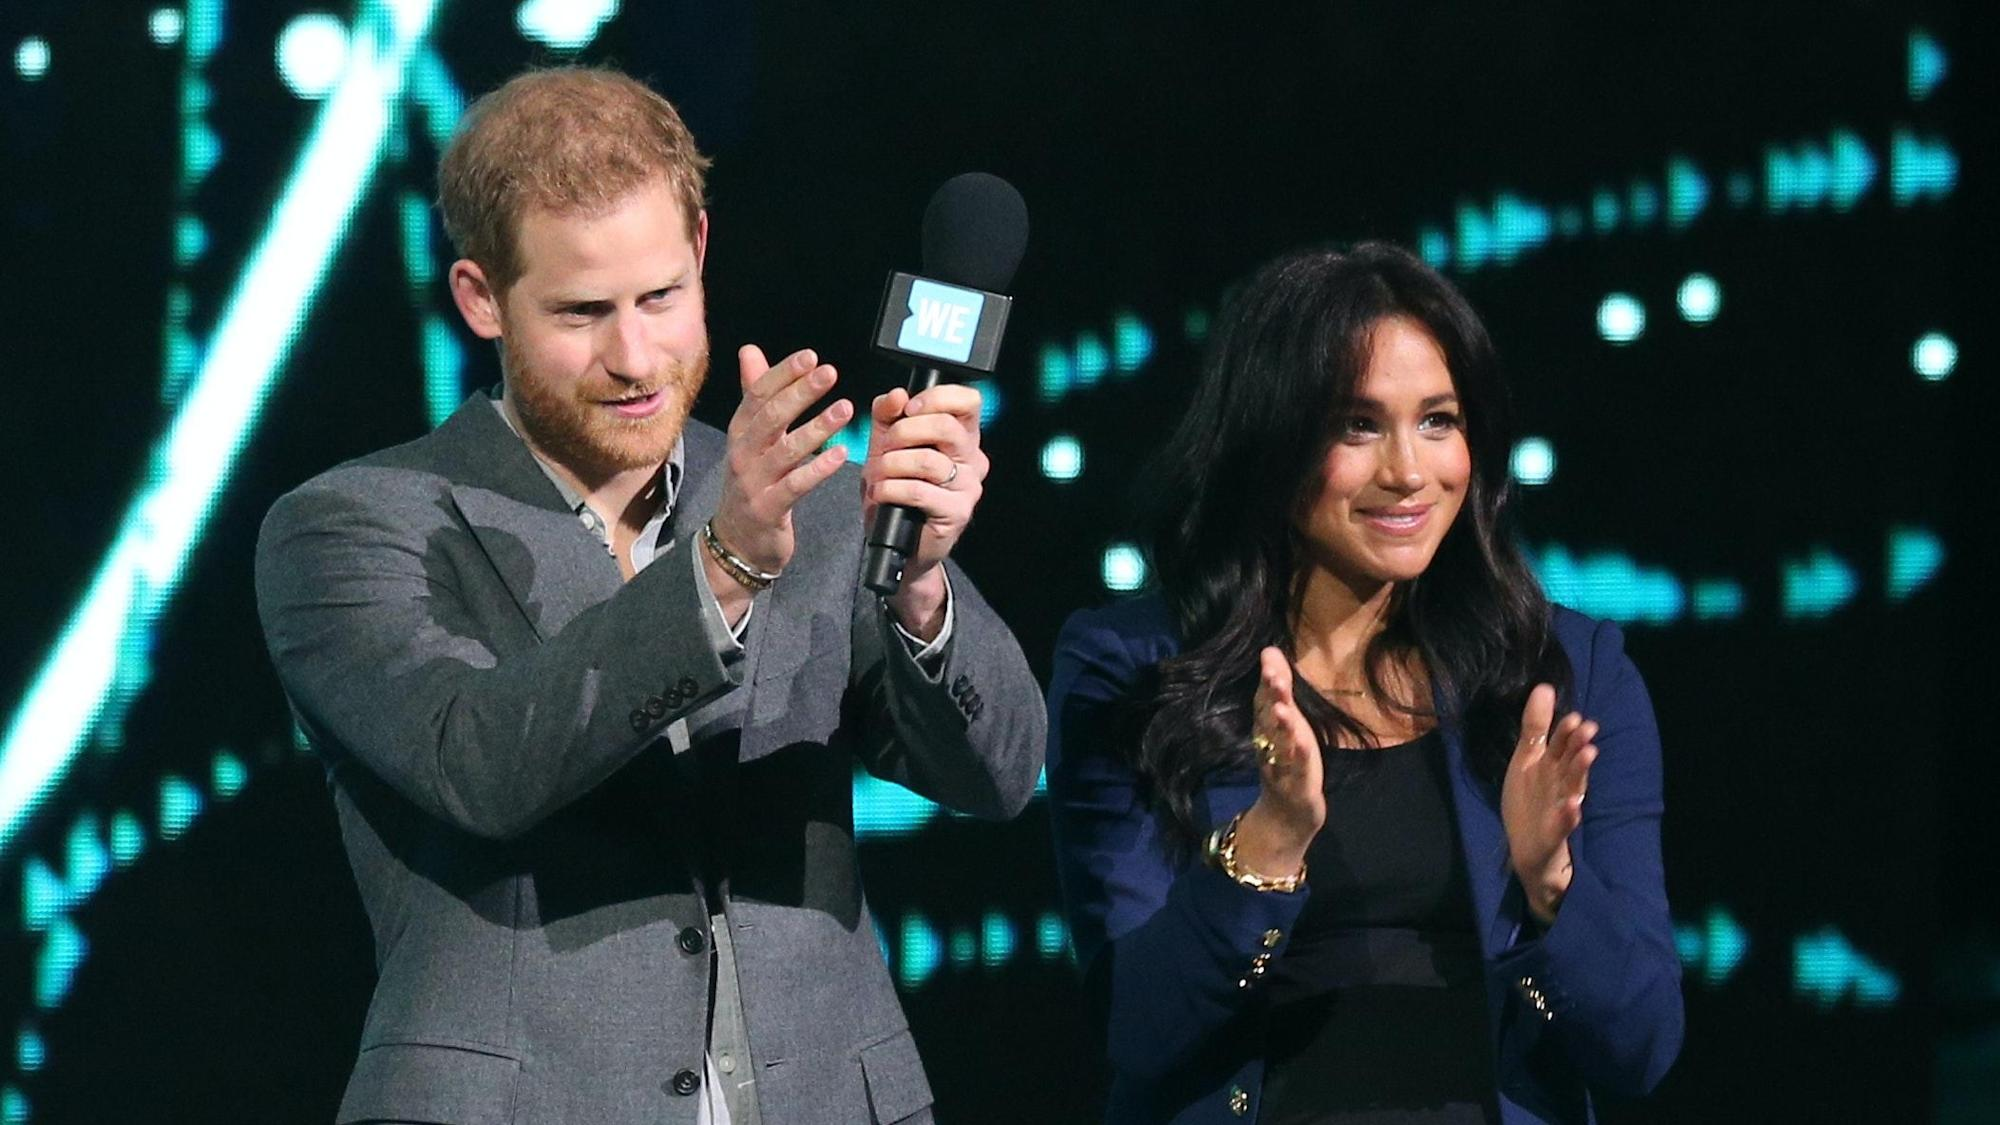 'Bear traps everywhere' for Harry and Meghan as they forge own careers